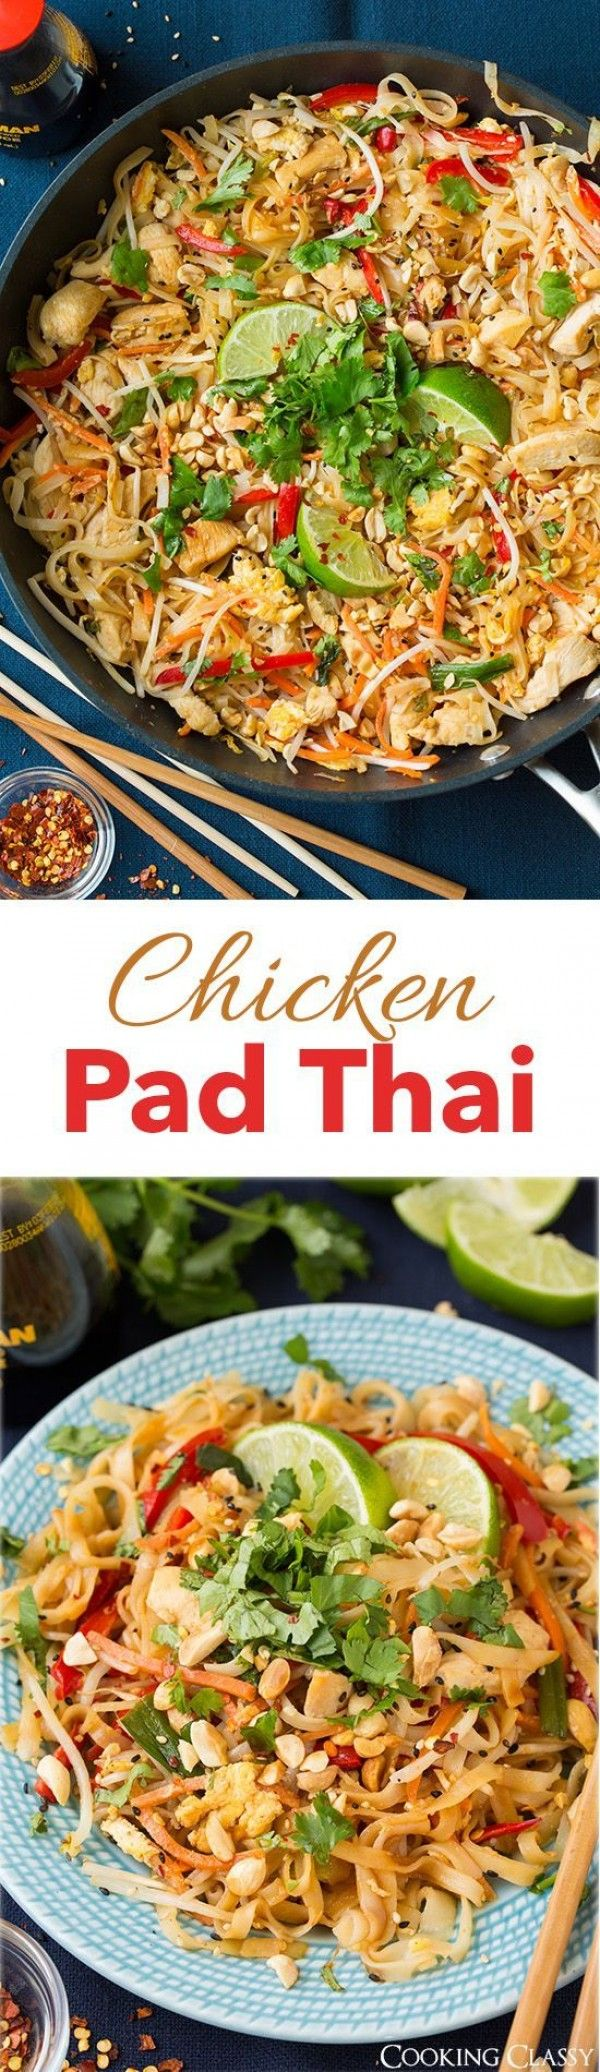 22 easy thai food recipes you can make at home recetas de comida 22 easy thai food recipes you can make at home forumfinder Image collections